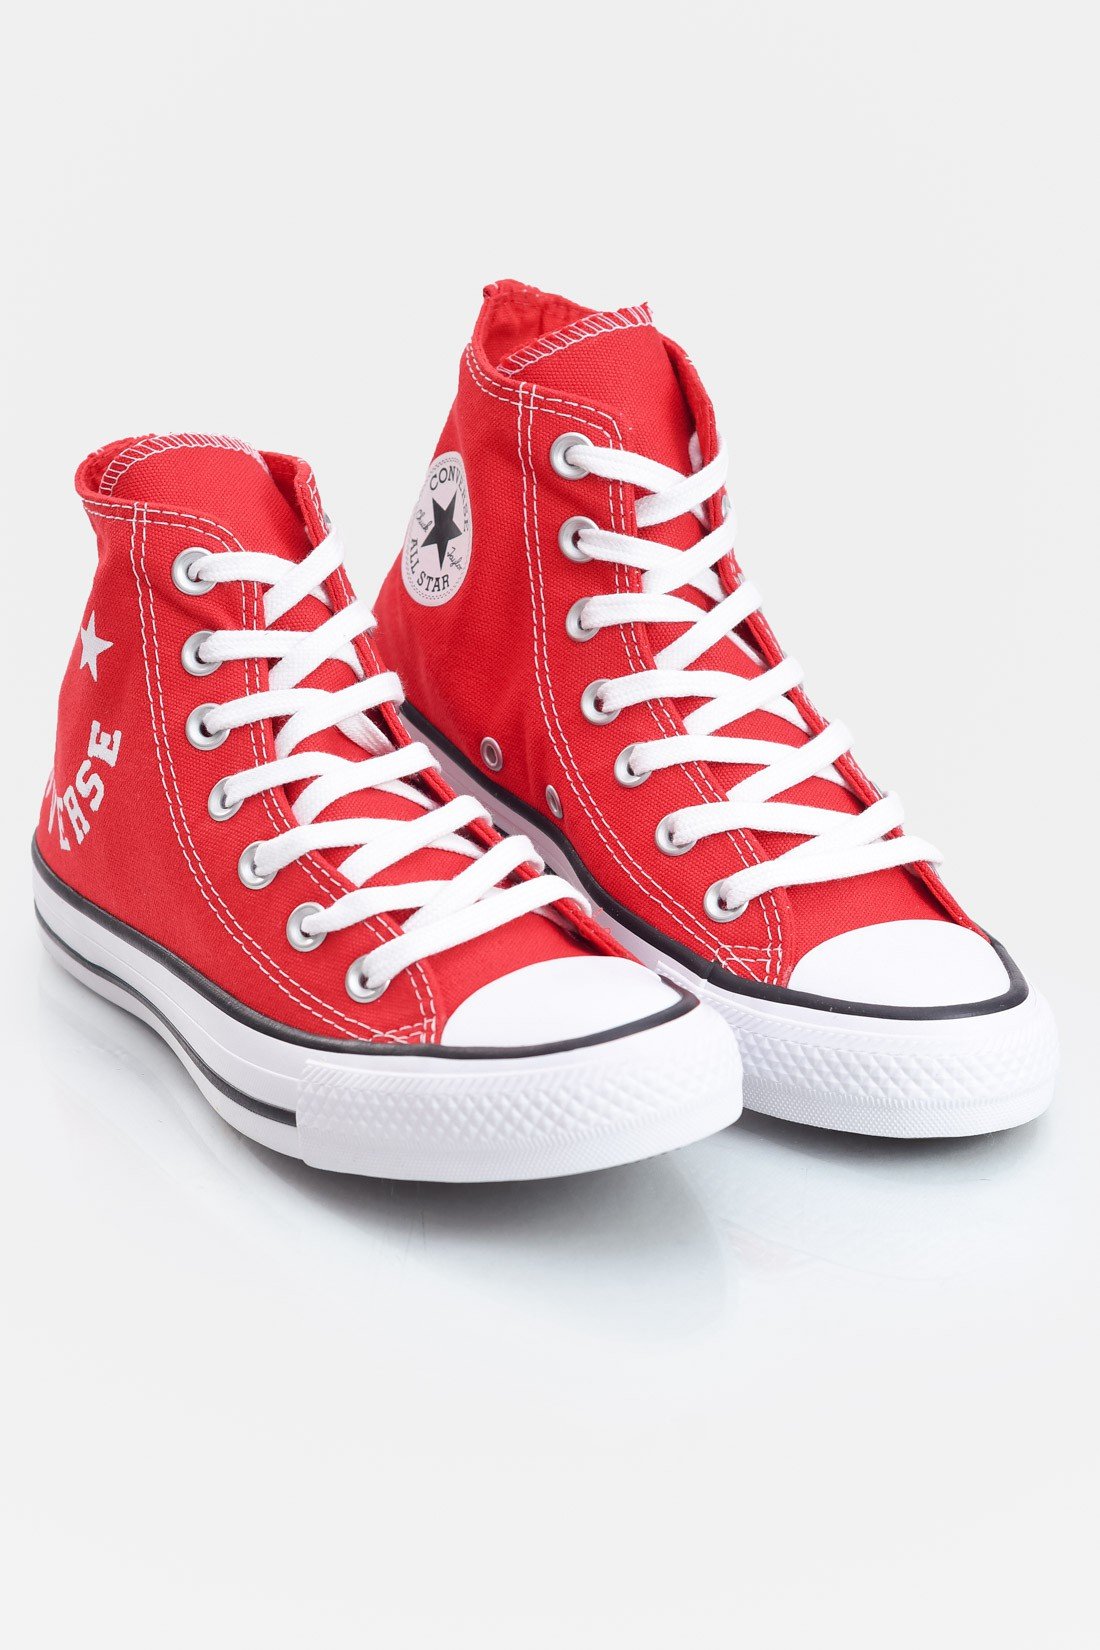 Tenis Botinha All Star Converse